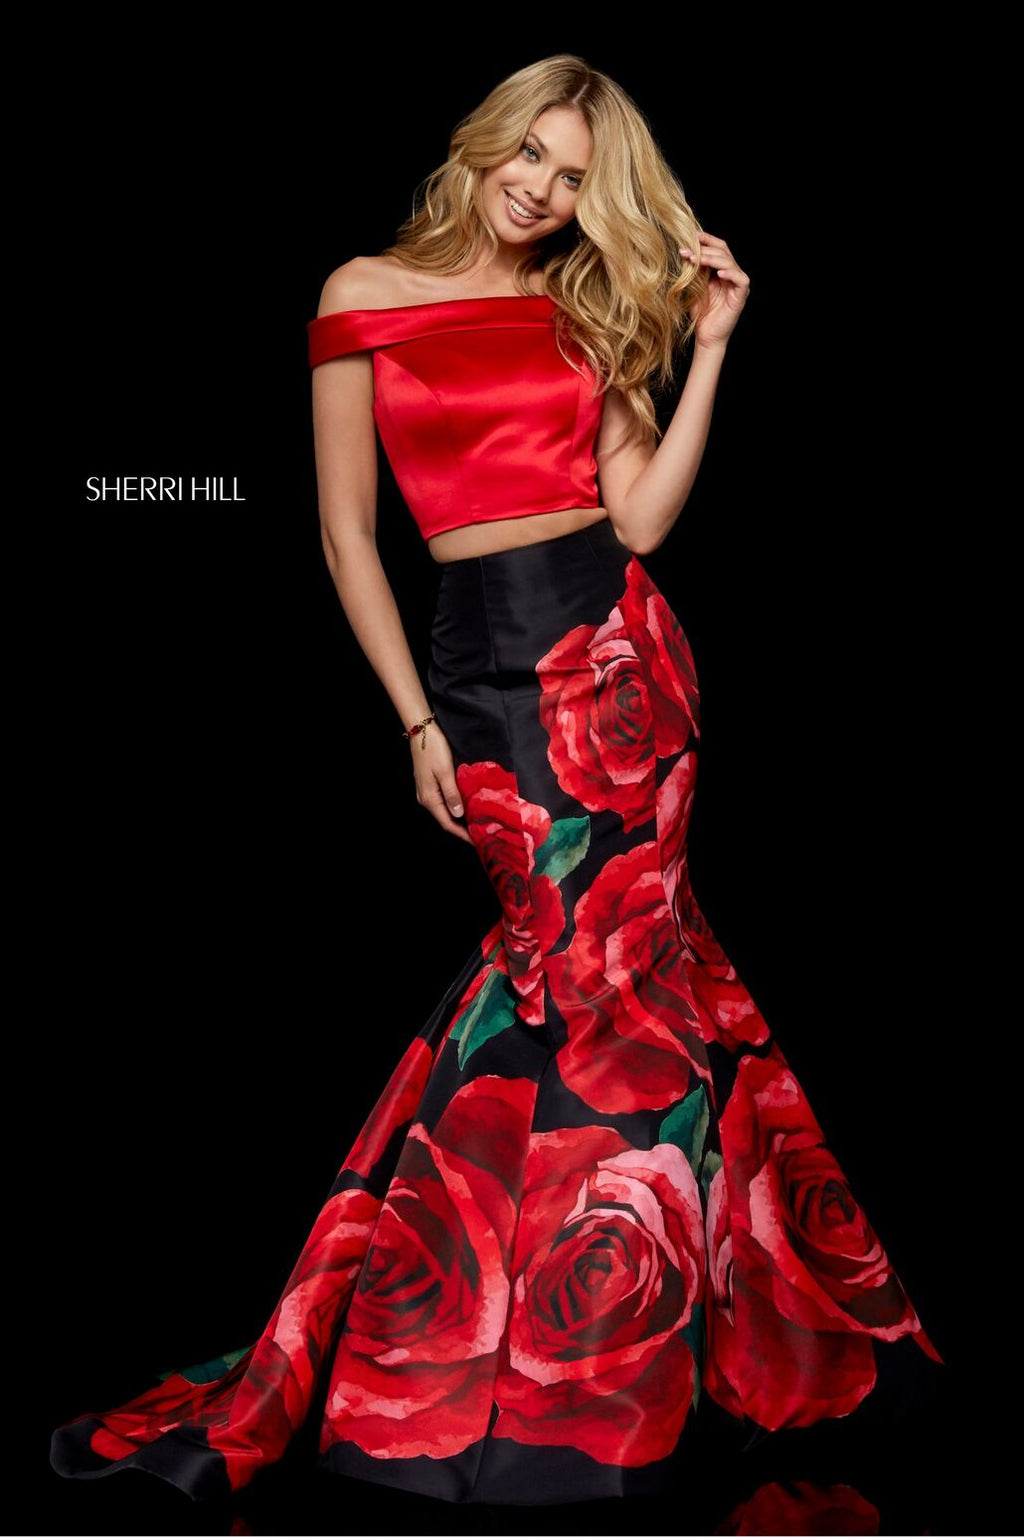 This Sherri Hill 51850 two-piece gown in red/black print features an off-the-shoulder bodice with a keyhole back and a floral mermaid skirt.